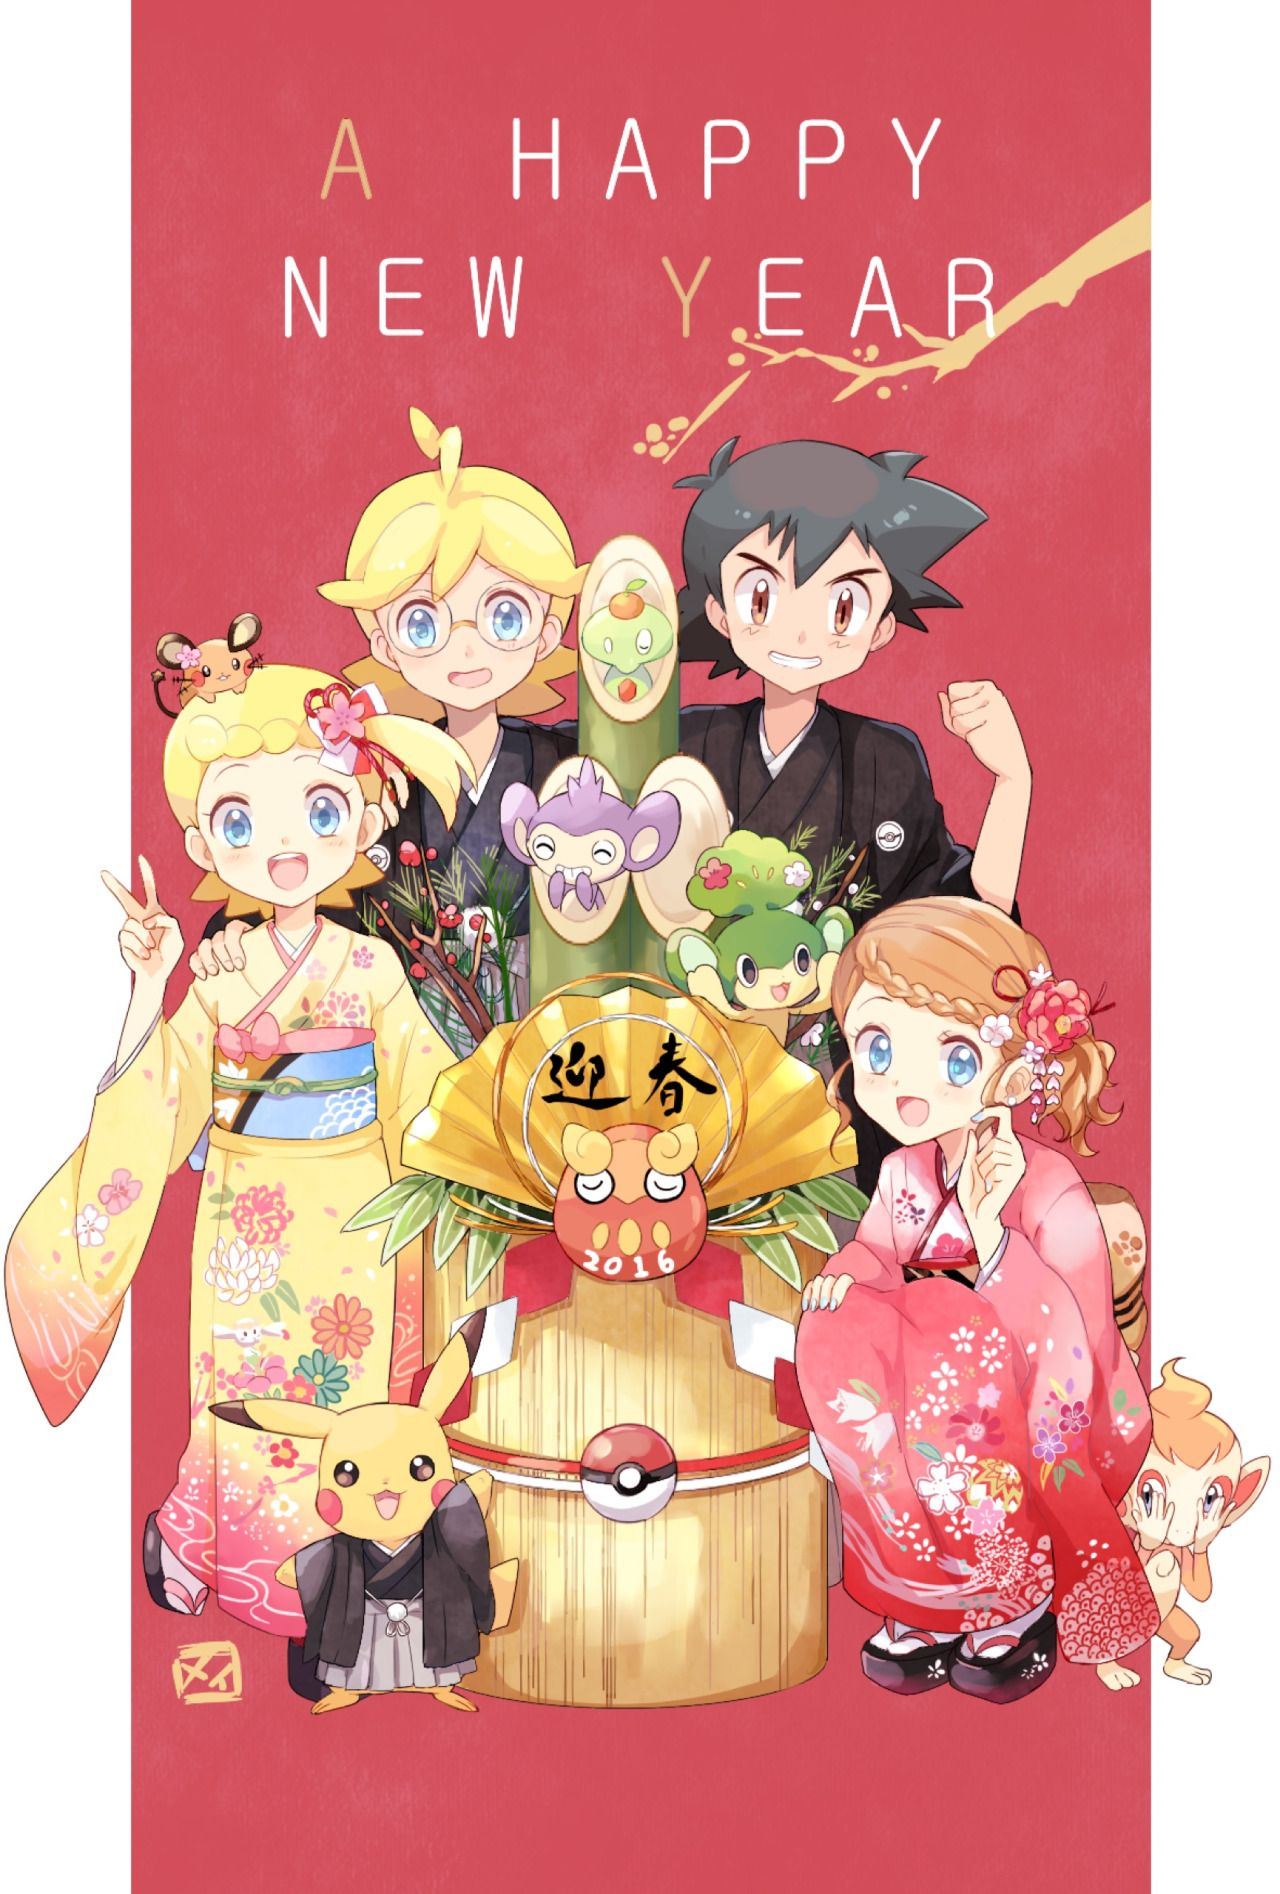 Yay! 2016! Even though I'm not a huge fan of the anime, I